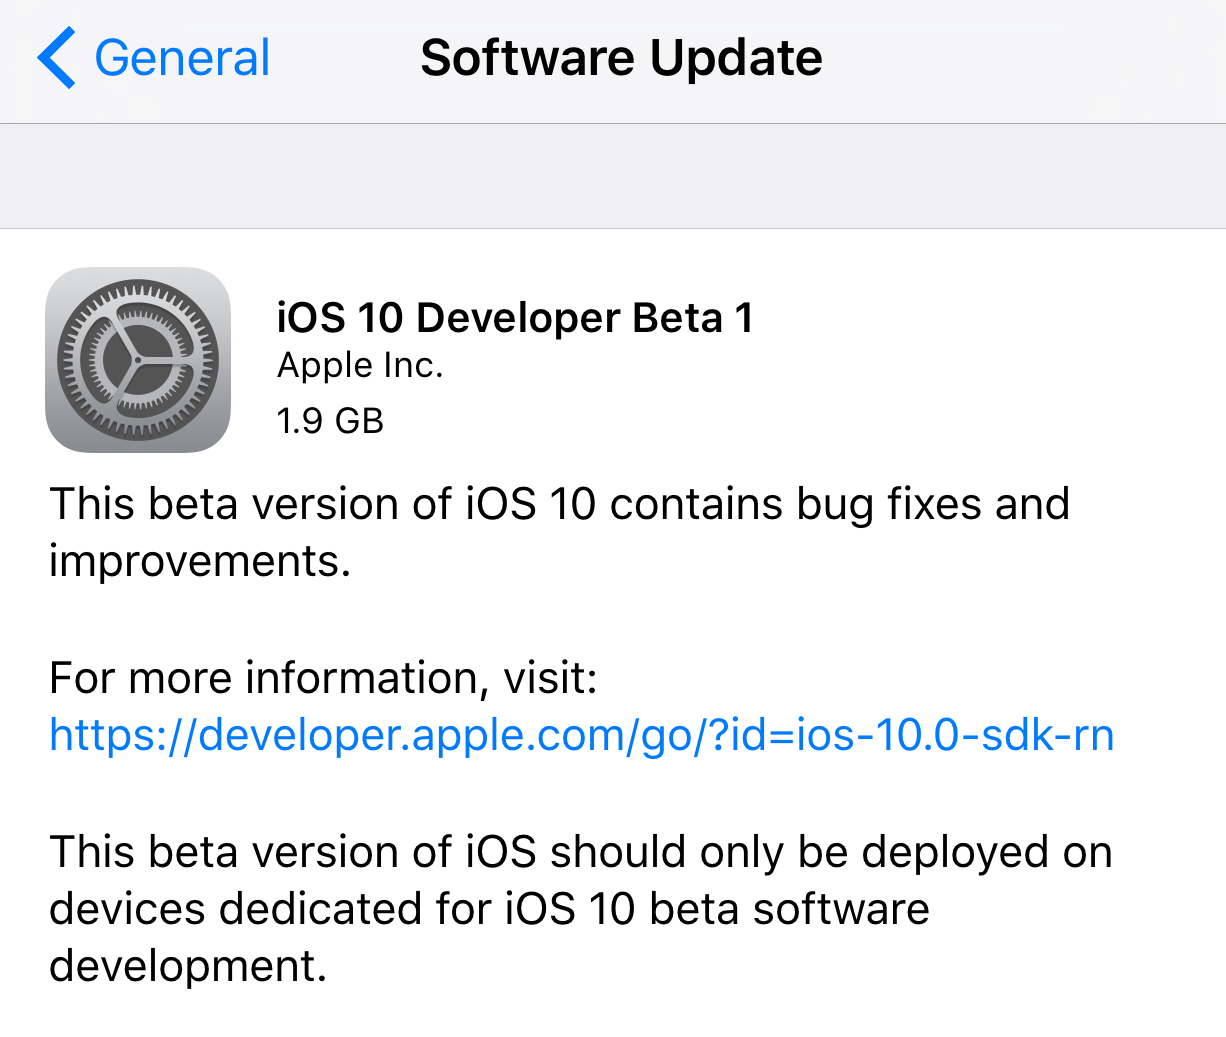 Install iOS 10 on iDevice Over the Air